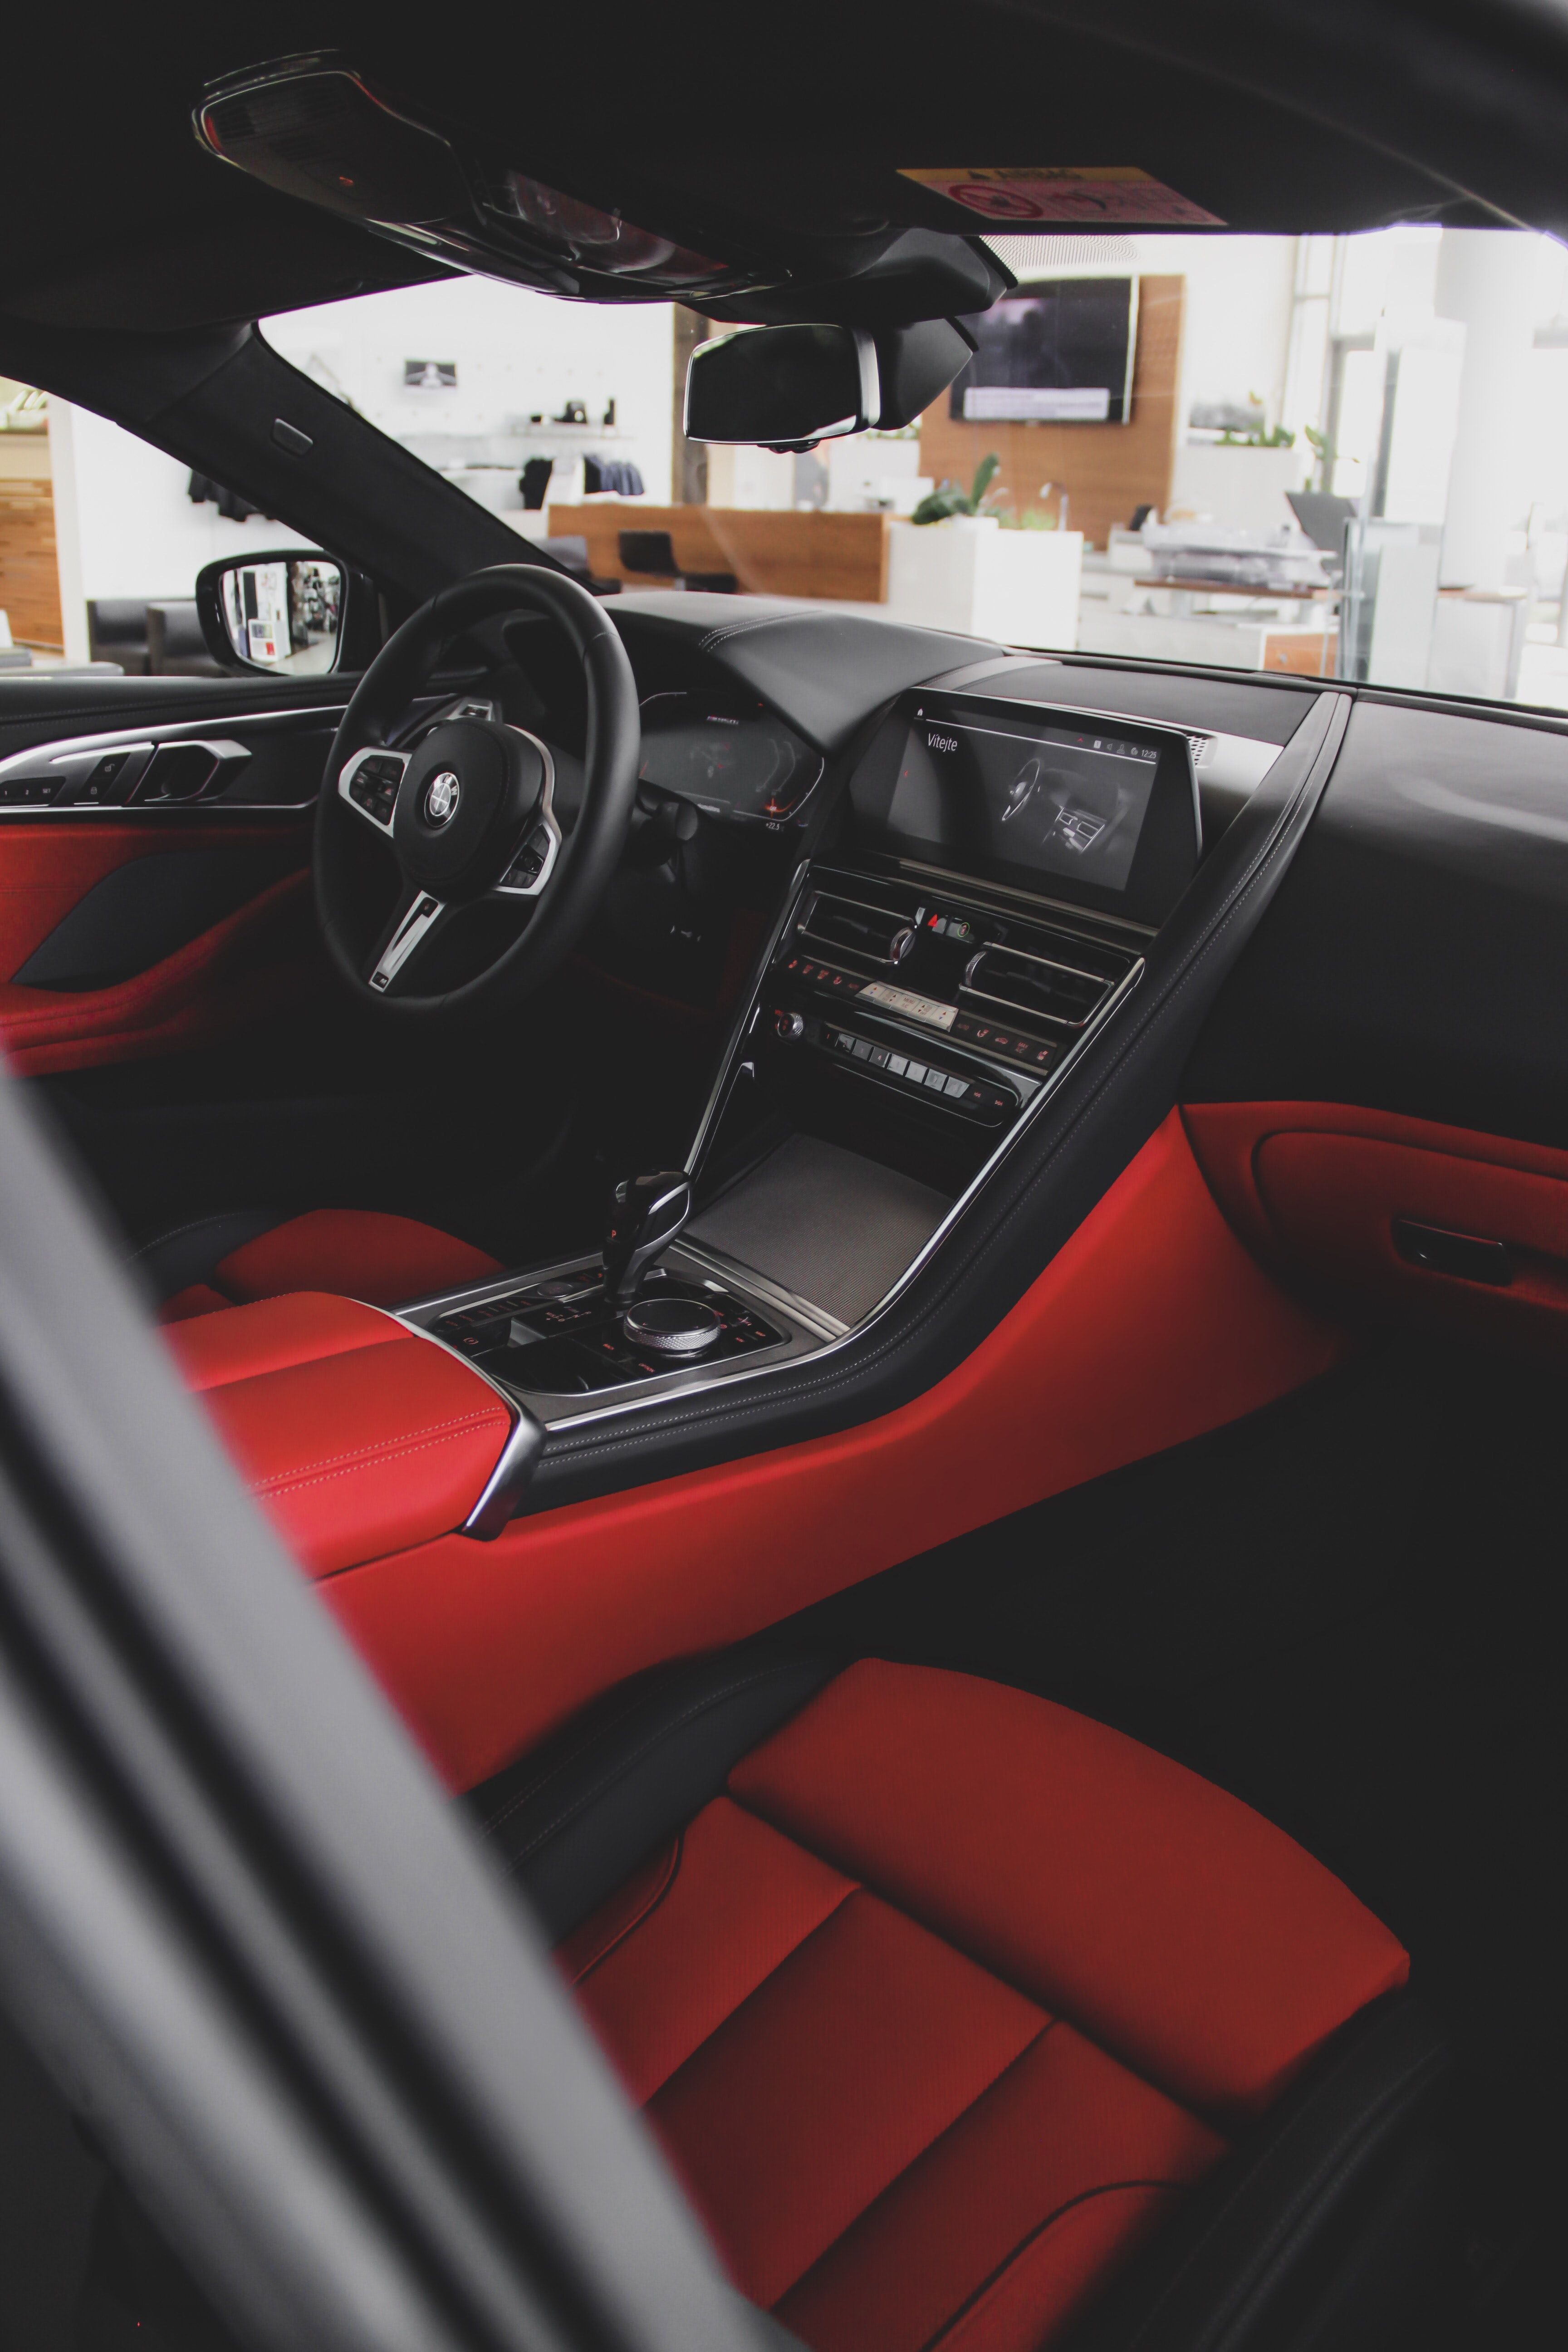 Black And Red Car Interior During Daytime Cars In 2020 Red Interior Car Pink Car Interior Luxury Car Interior